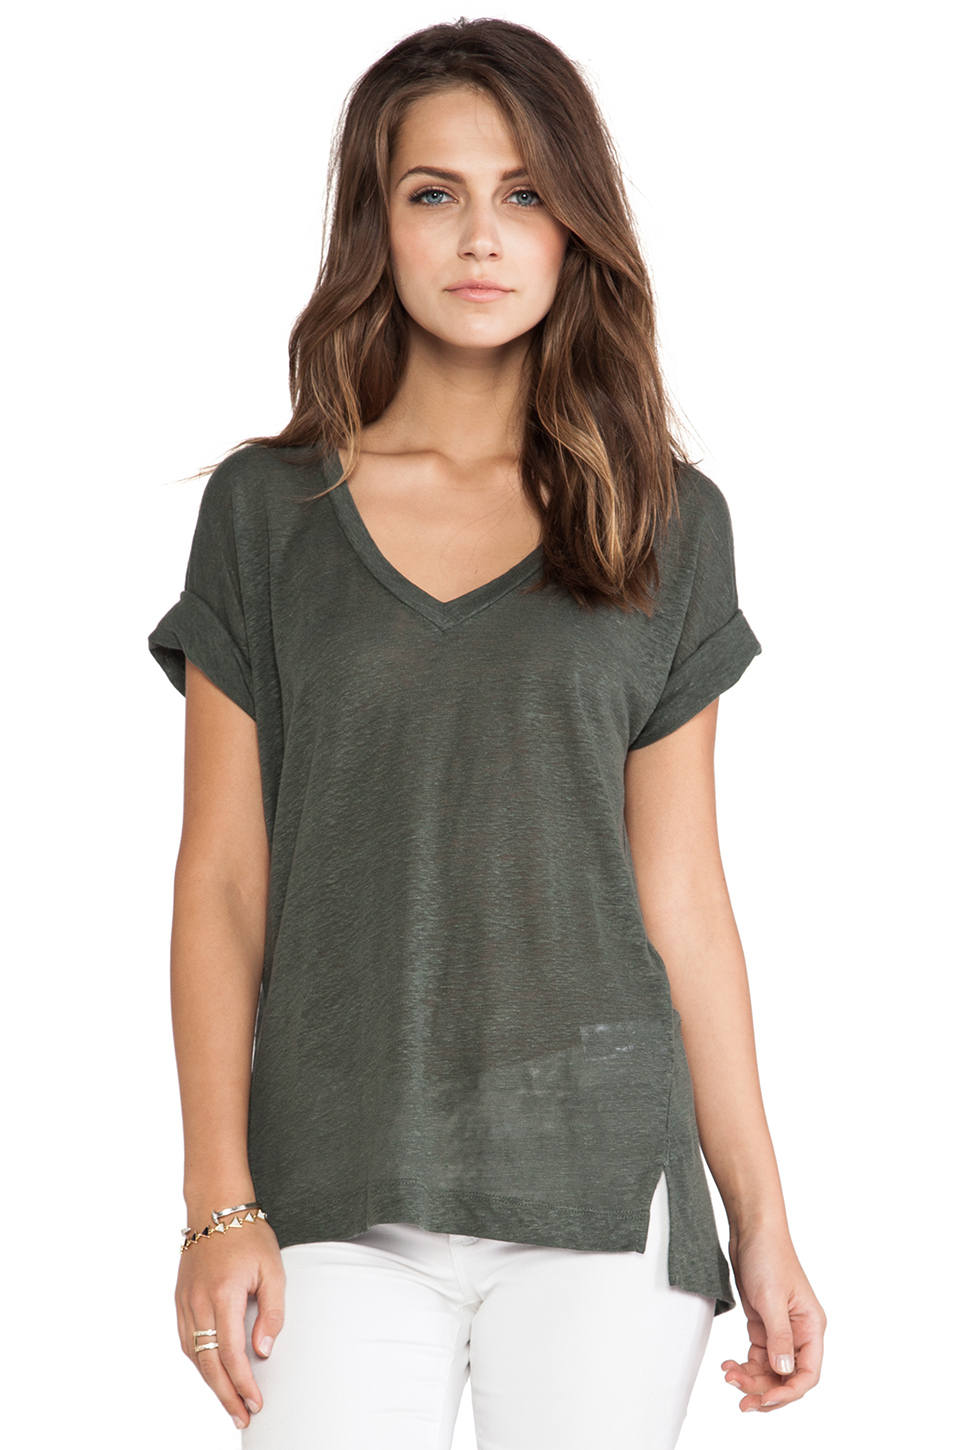 Splendid Linen Jersey V-Neck Tee in Brown